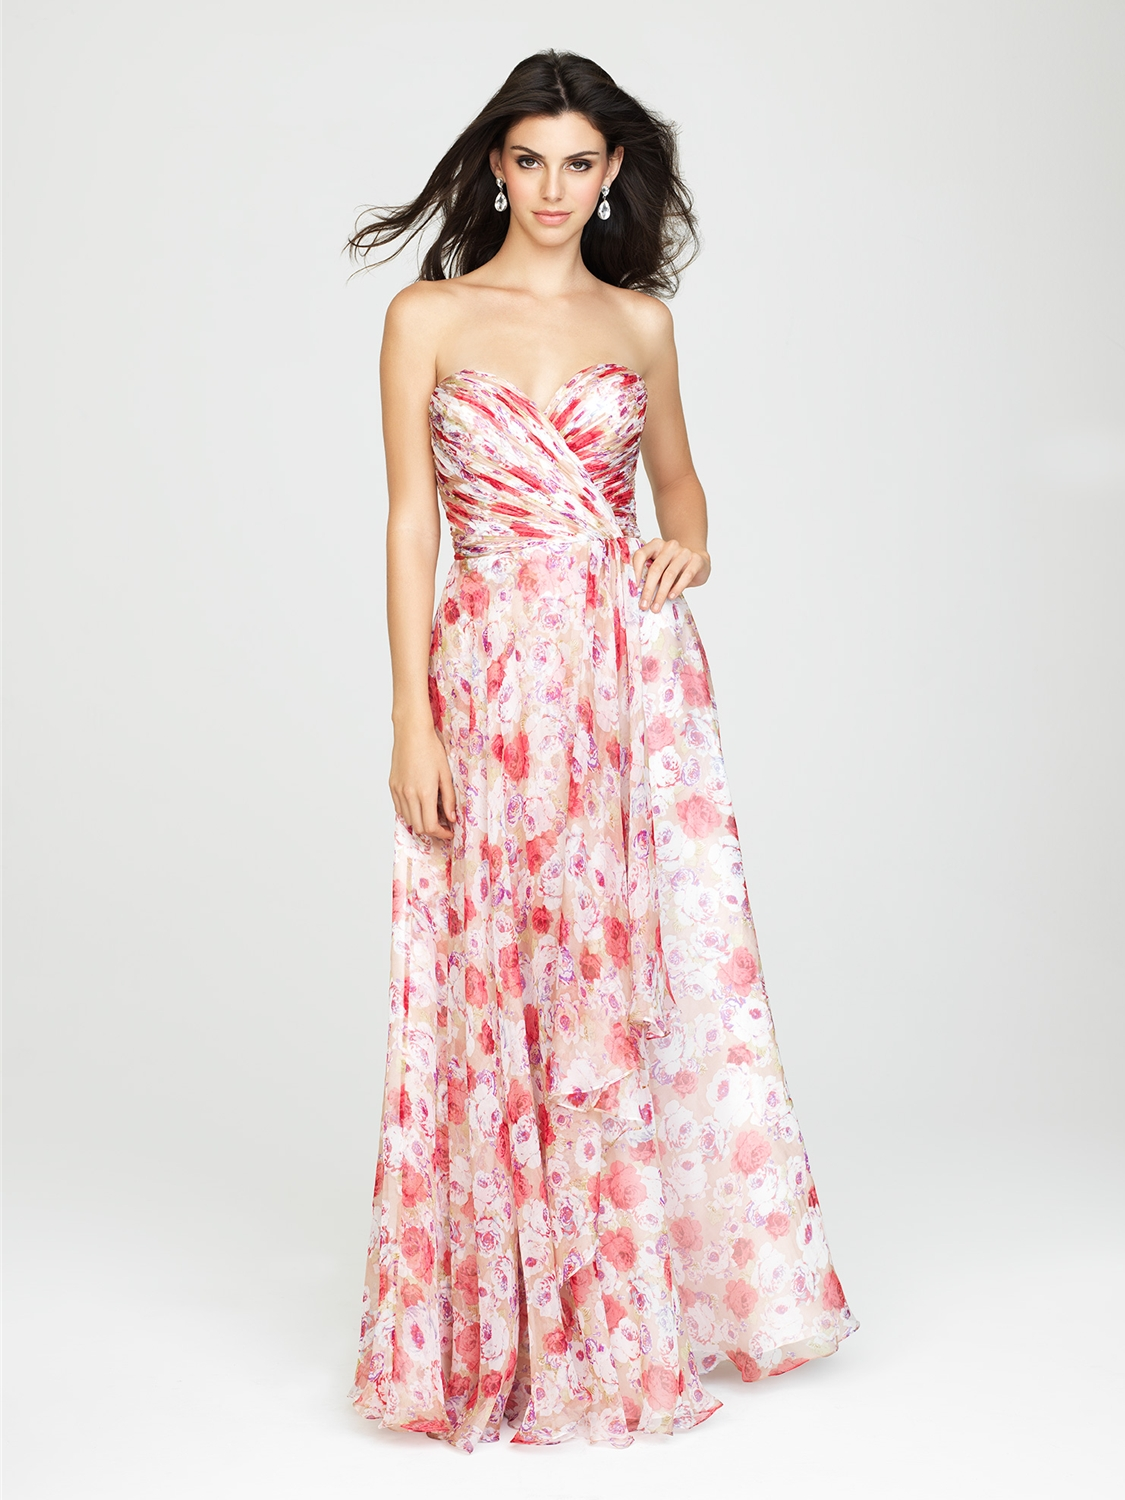 Allure bridesmaids bridesmaid dress style 1436 house of brides select color junglespirit Gallery